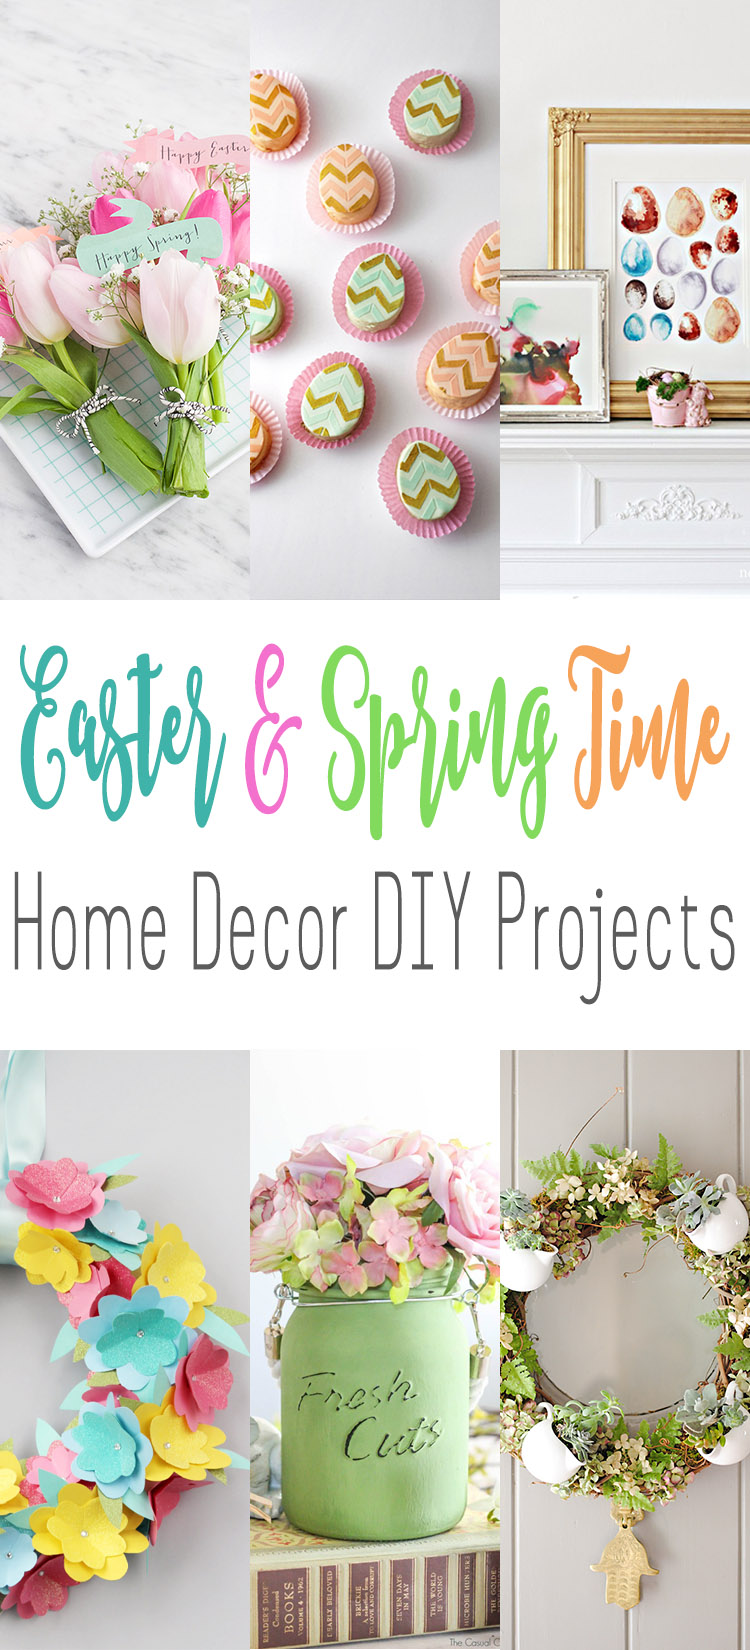 Easter And Spring Home Decor Diy Projects The Cottage Market